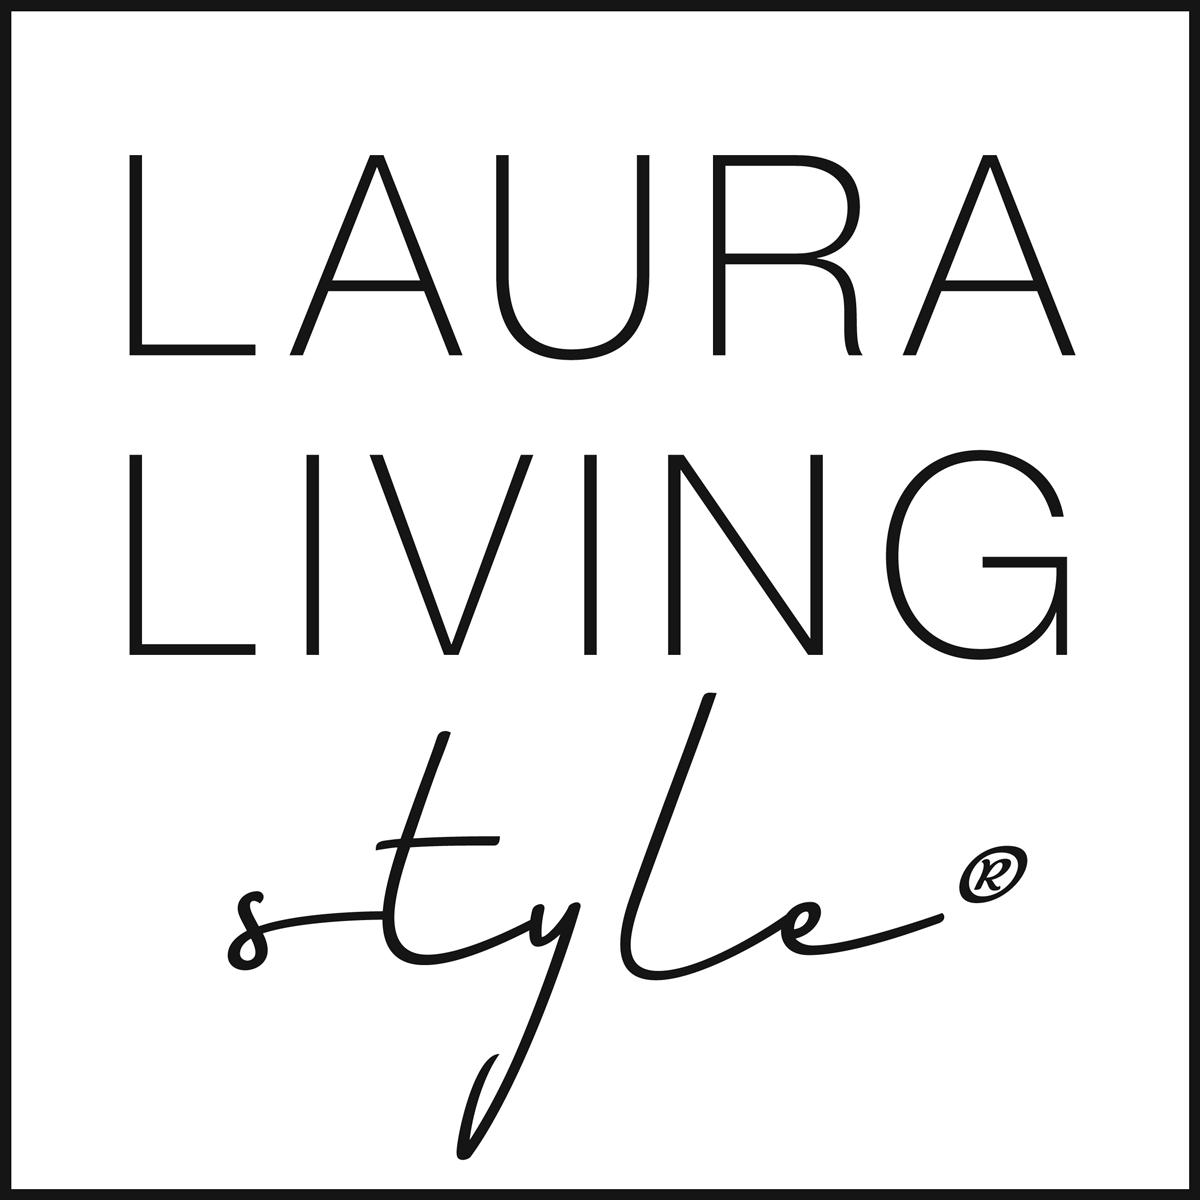 Laura Living Style